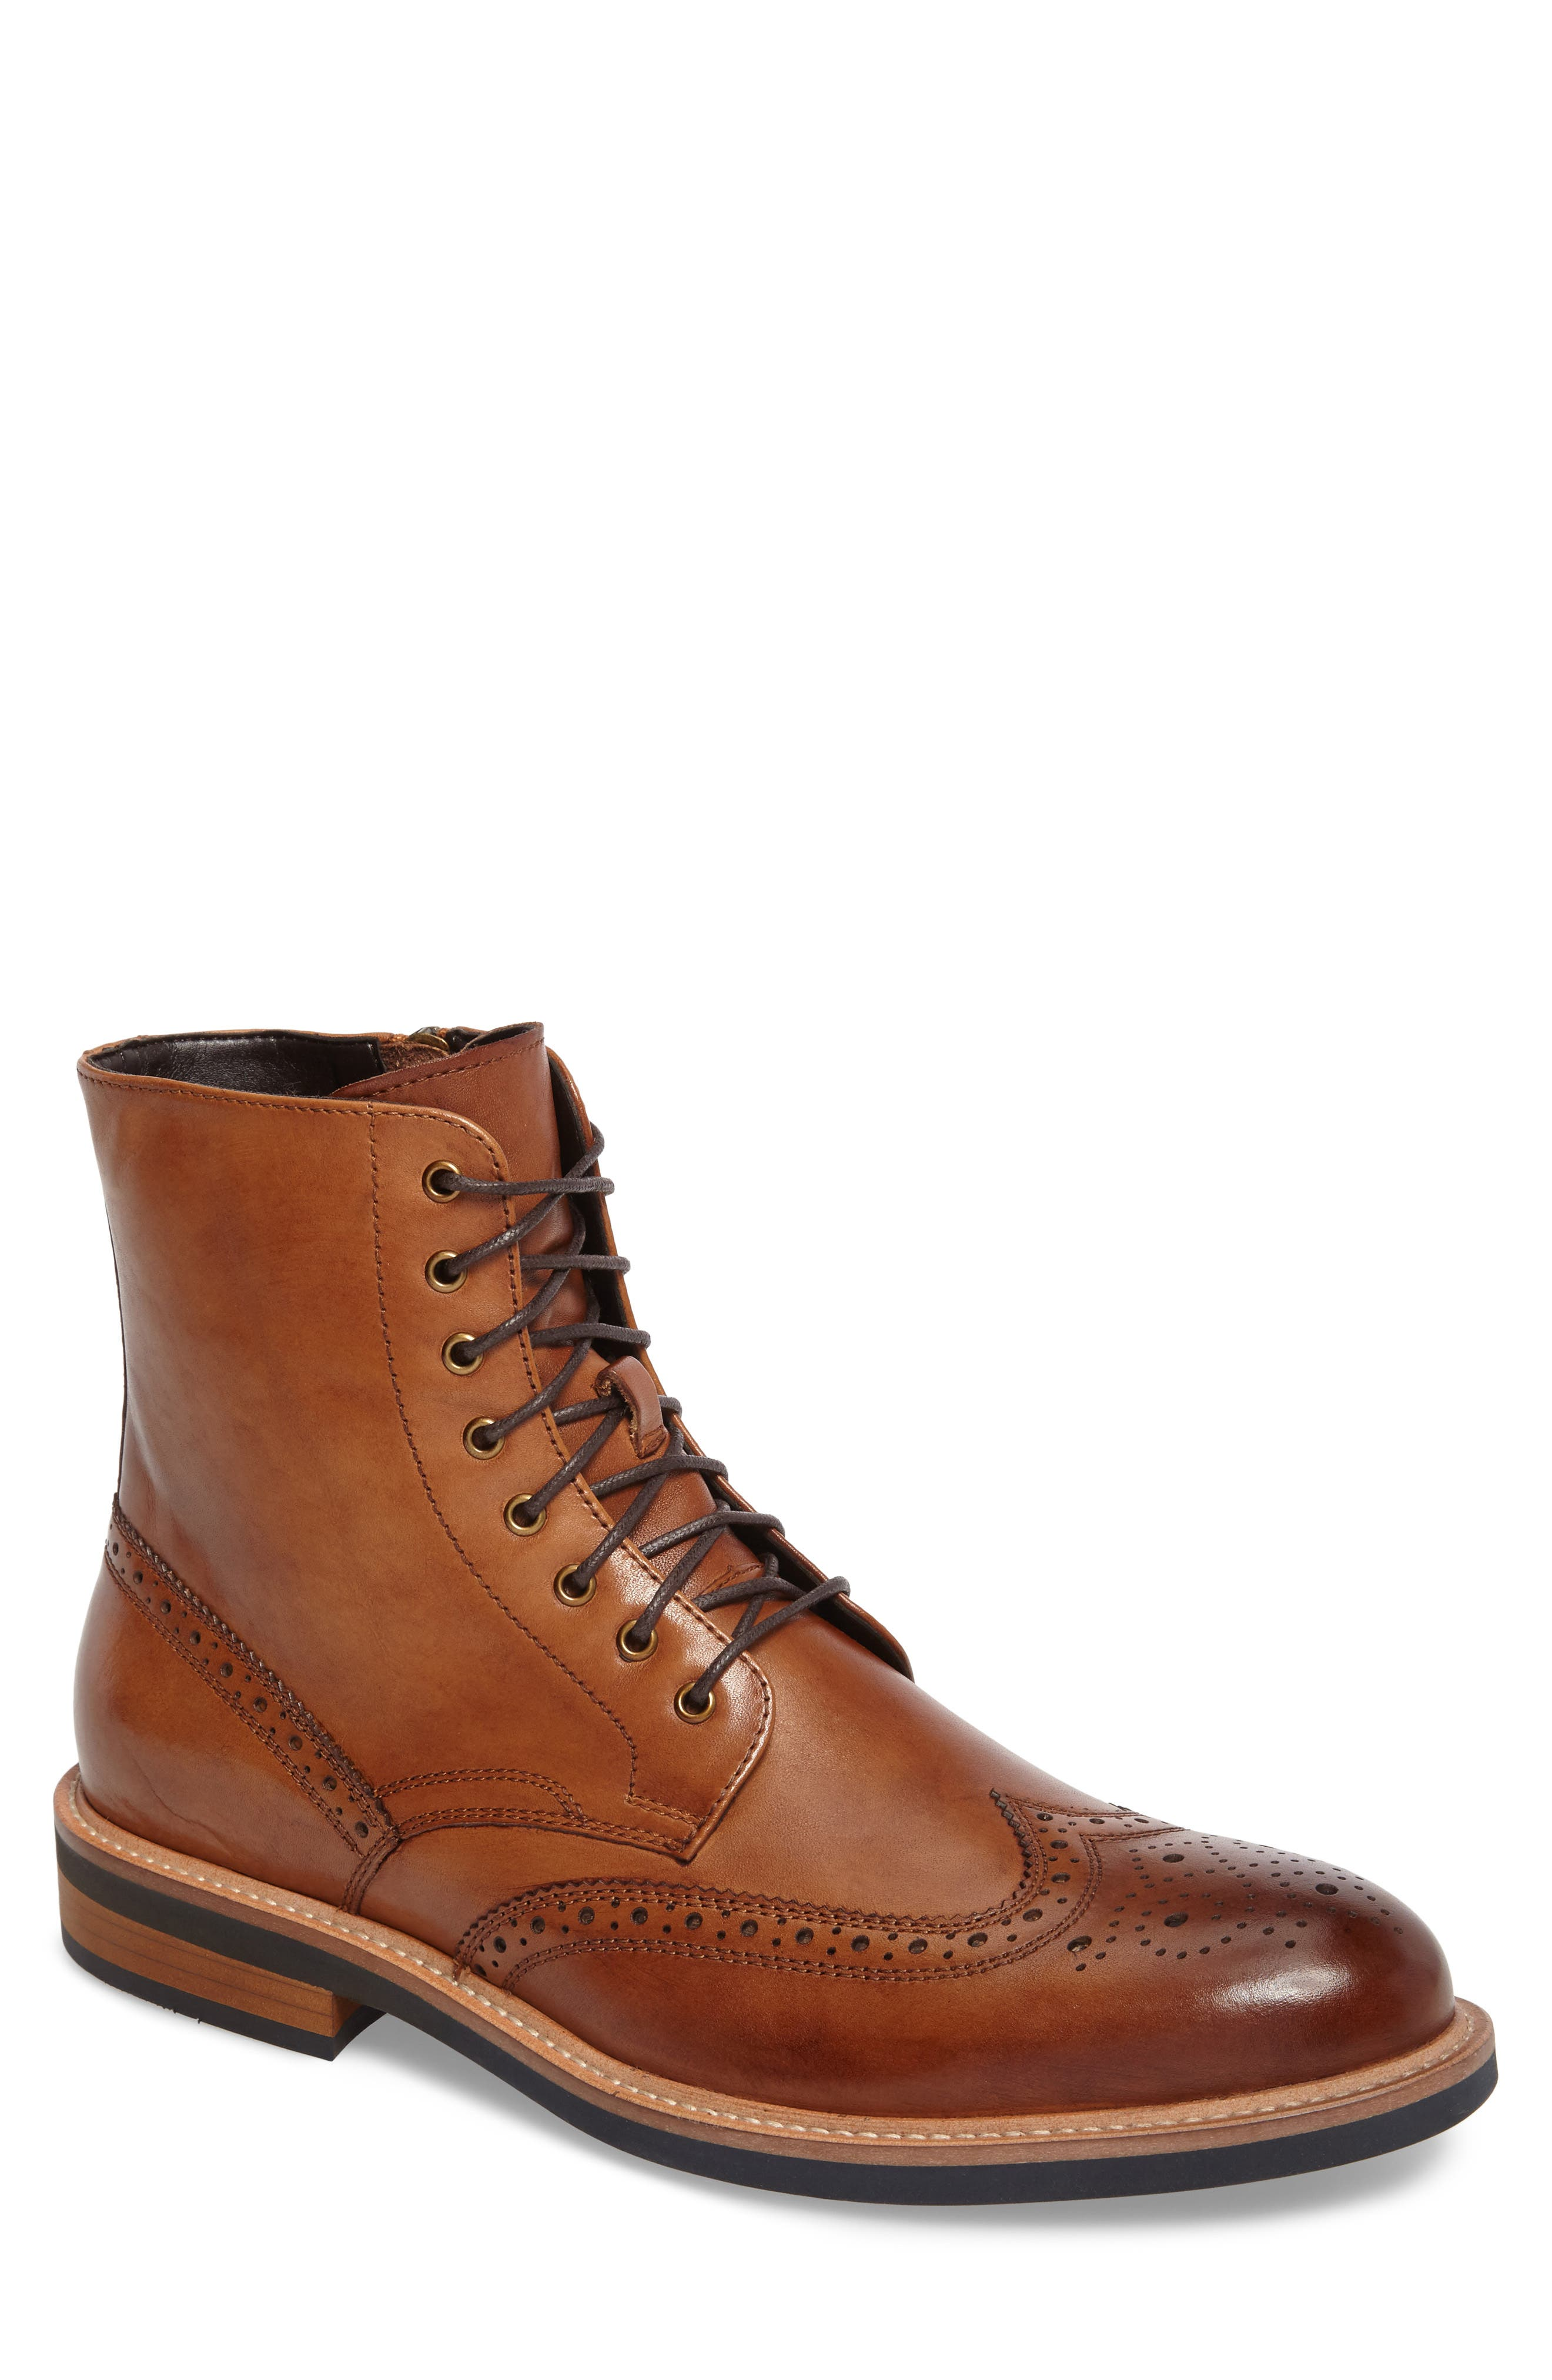 Kenneth Cole Reaction Wingtip Boot,                             Main thumbnail 1, color,